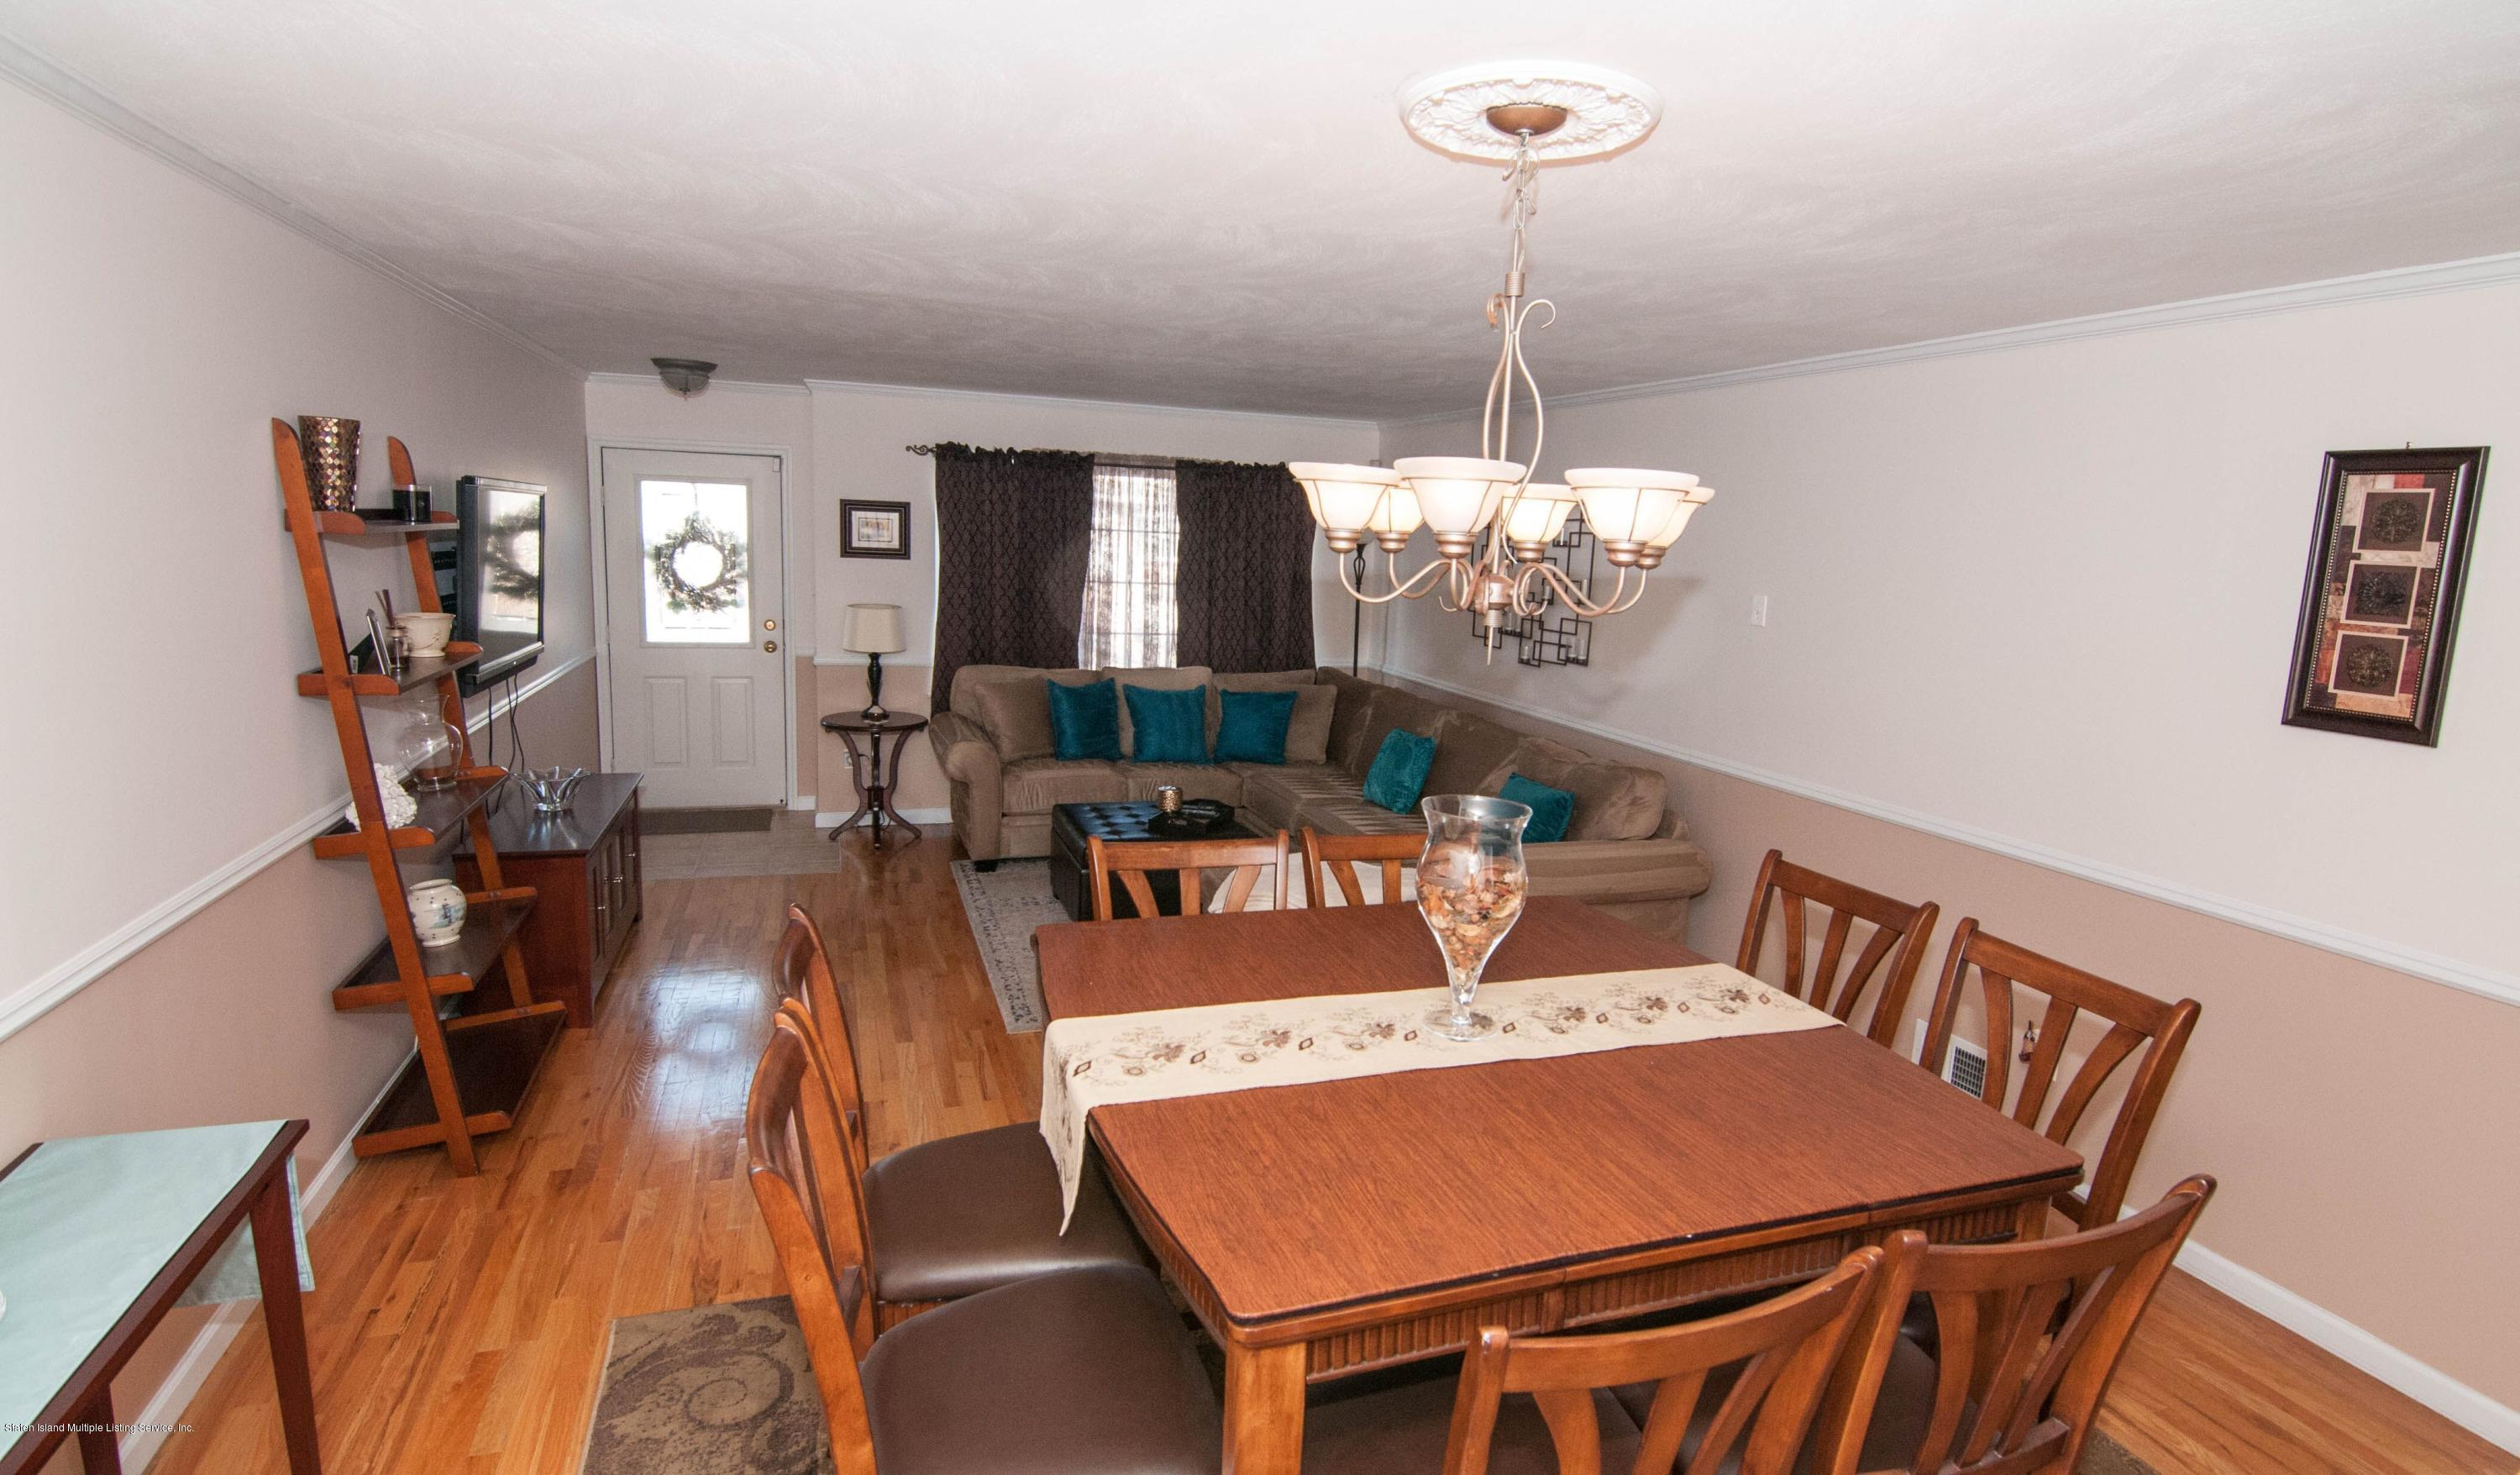 Single Family - Attached 56 Endview Street  Staten Island, NY 10312, MLS-1131439-9